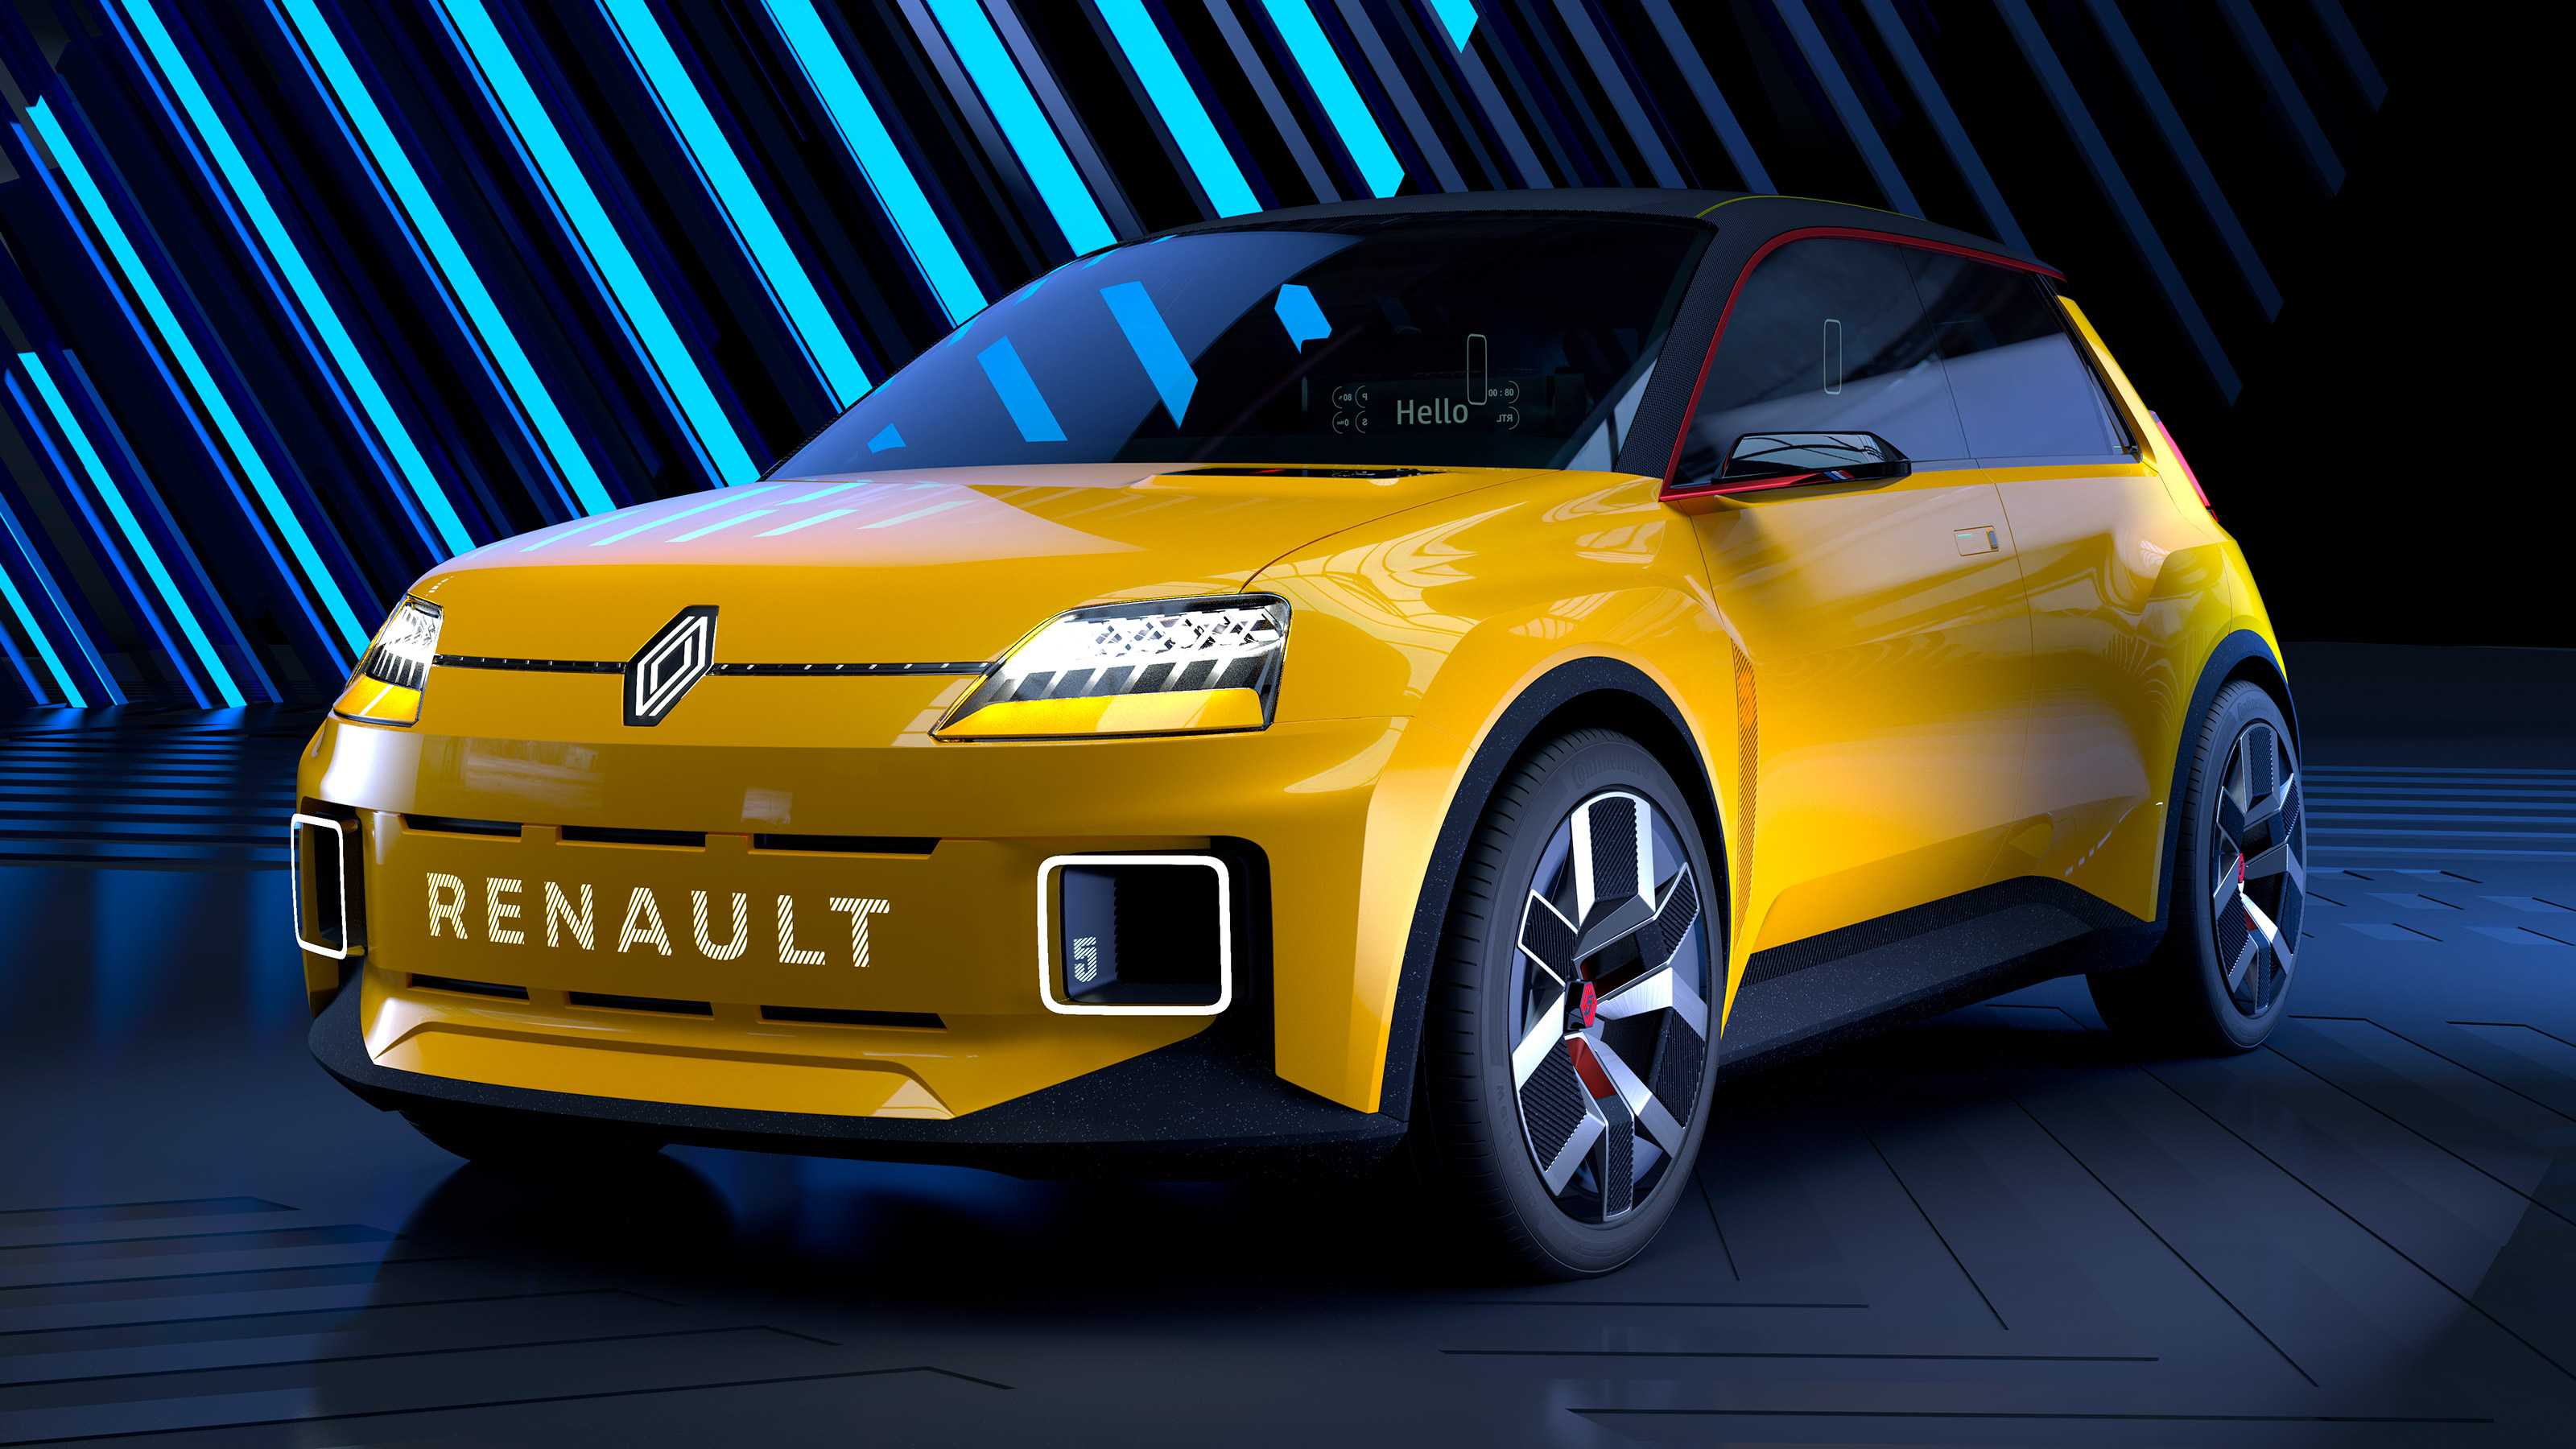 New Renault 5 Due In 2023 Priced From 18 000 To 26 500 Auto Express